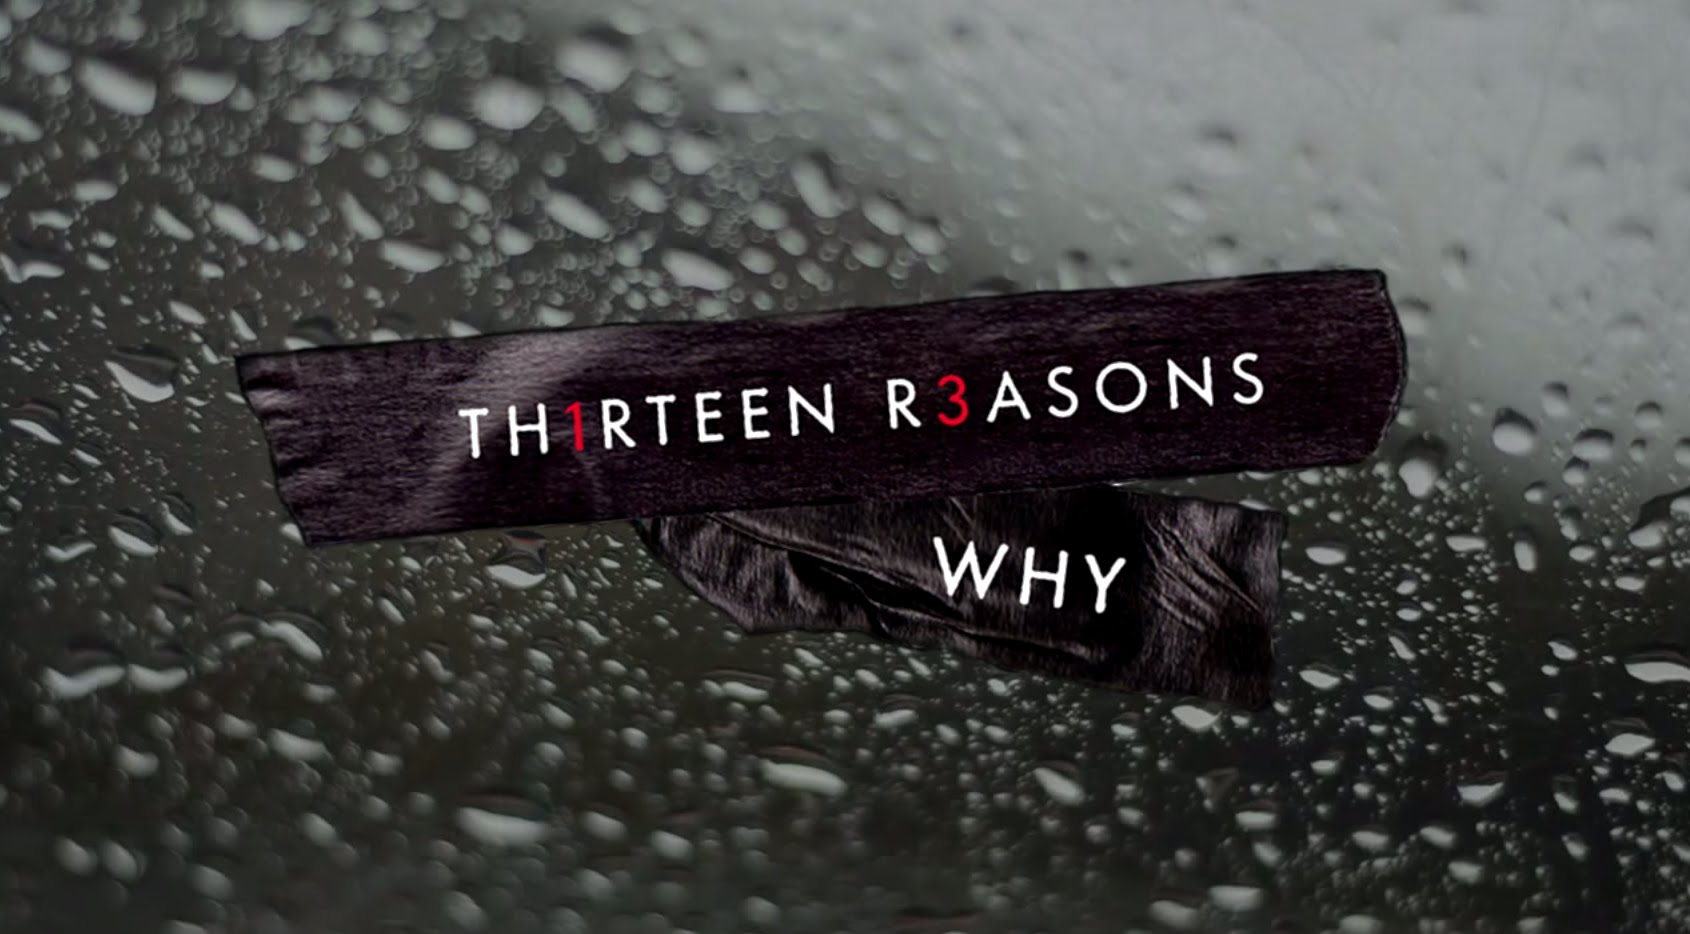 13-reasons-why-featured